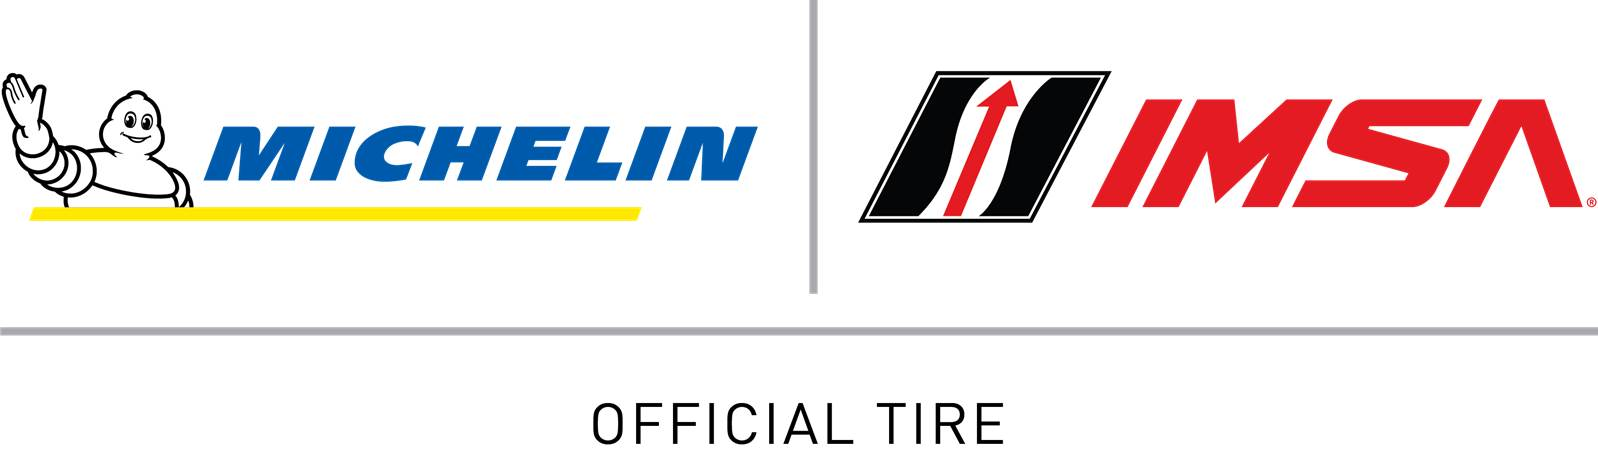 Offiical_Tire_Logo.jpg